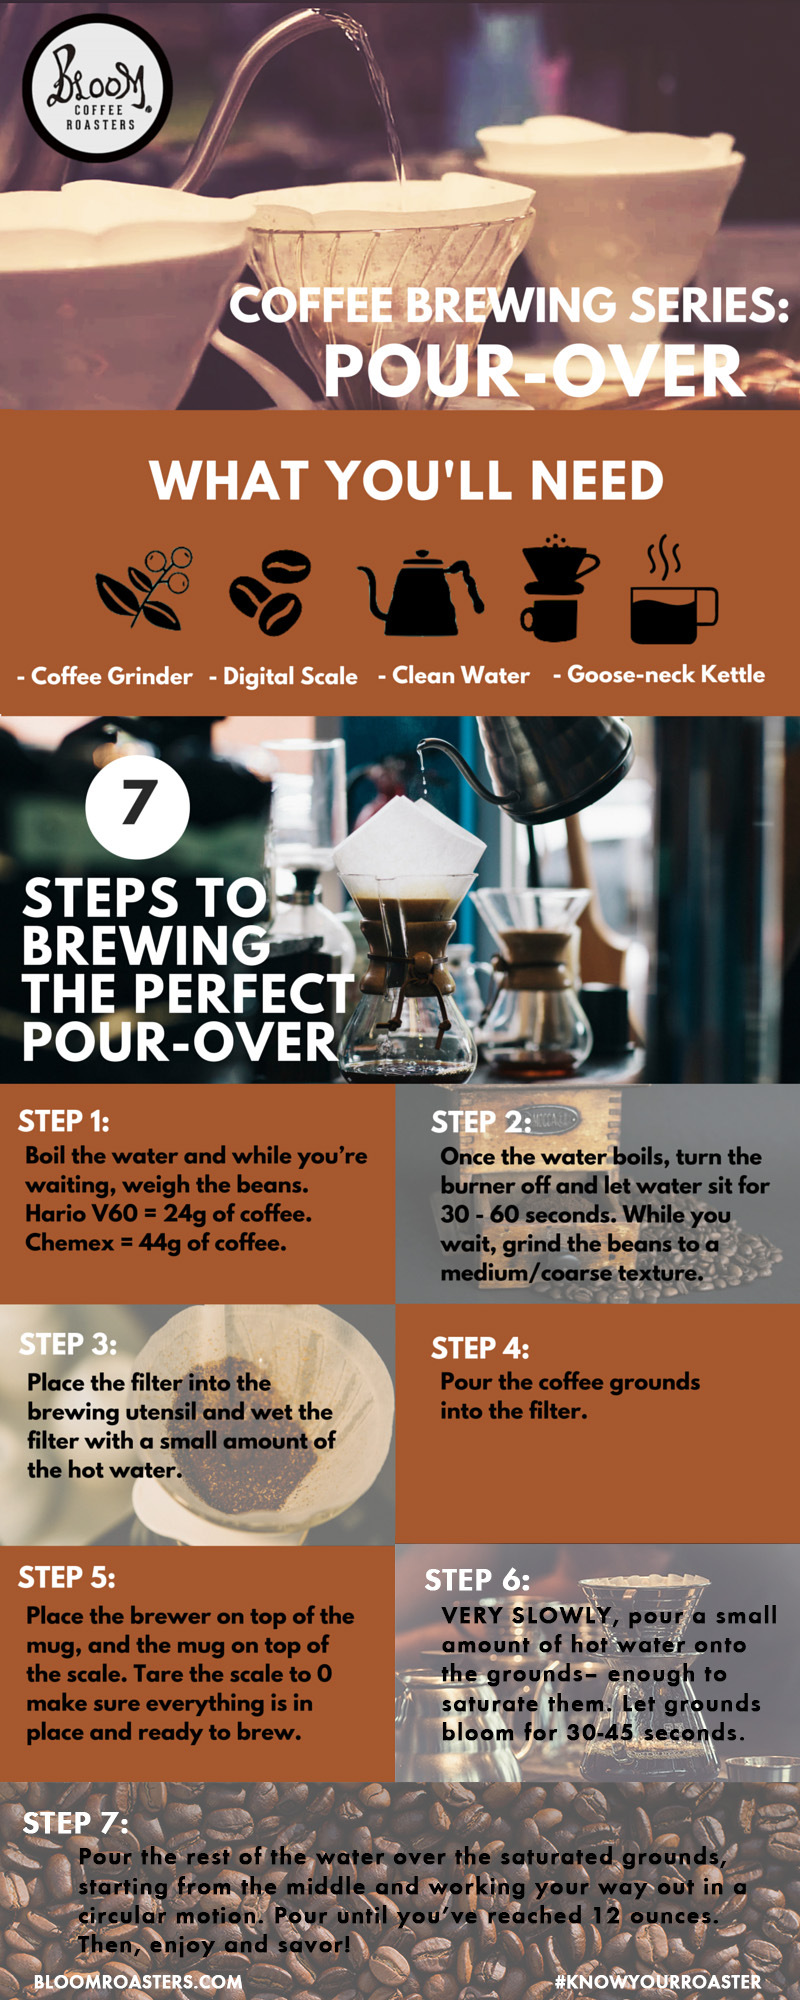 Pour-Over Brewing Infographic